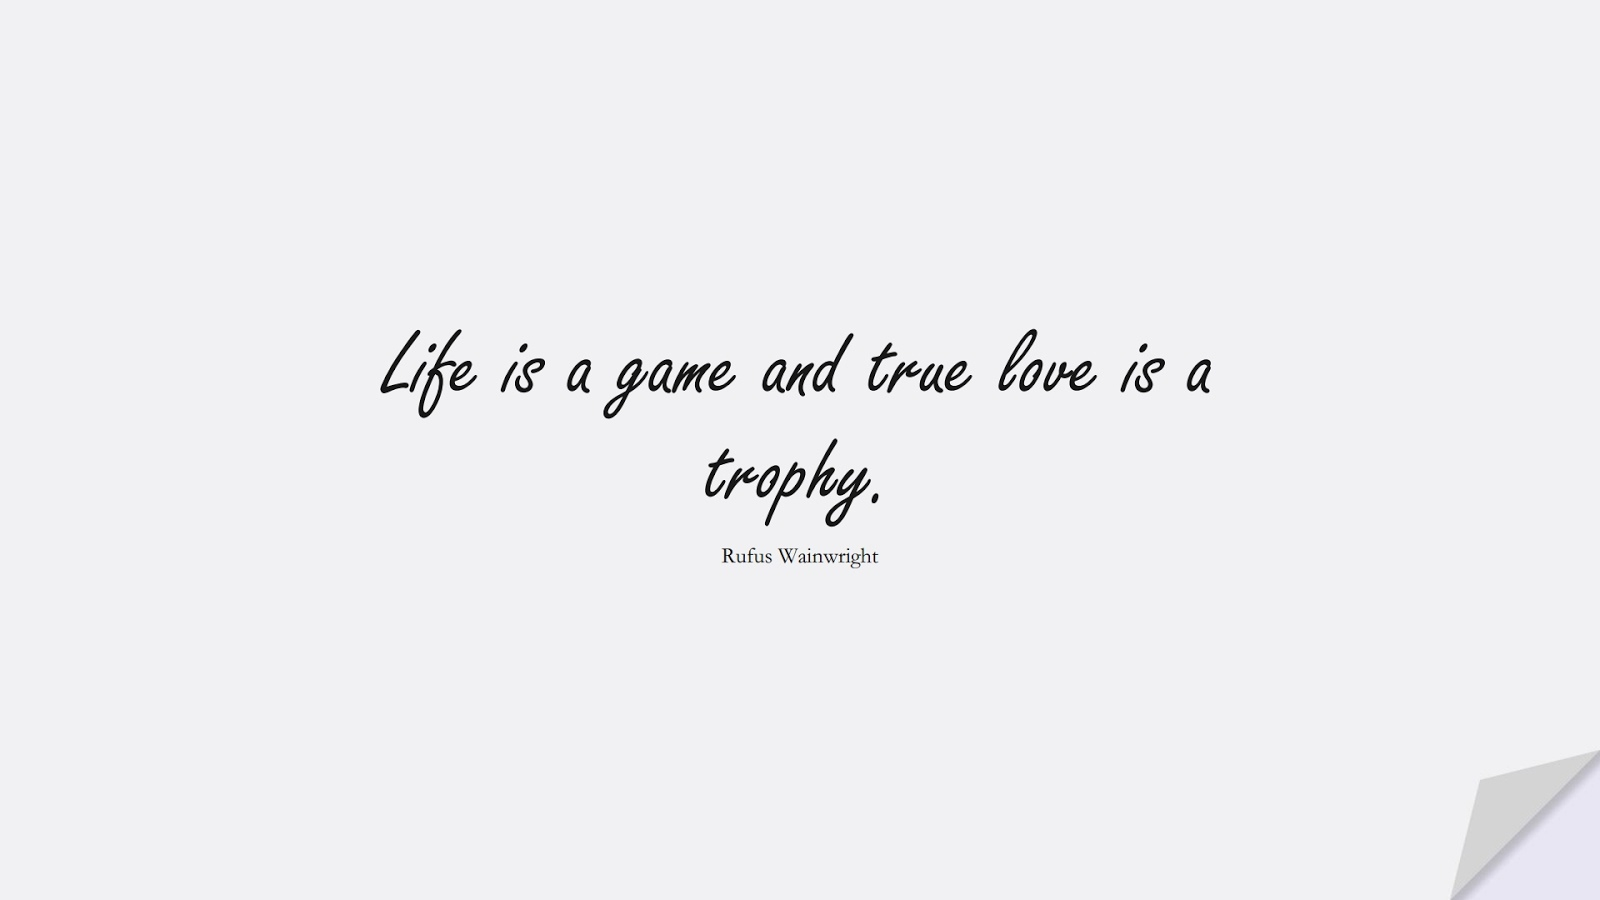 Life is a game and true love is a trophy. (Rufus Wainwright);  #ShortQuotes